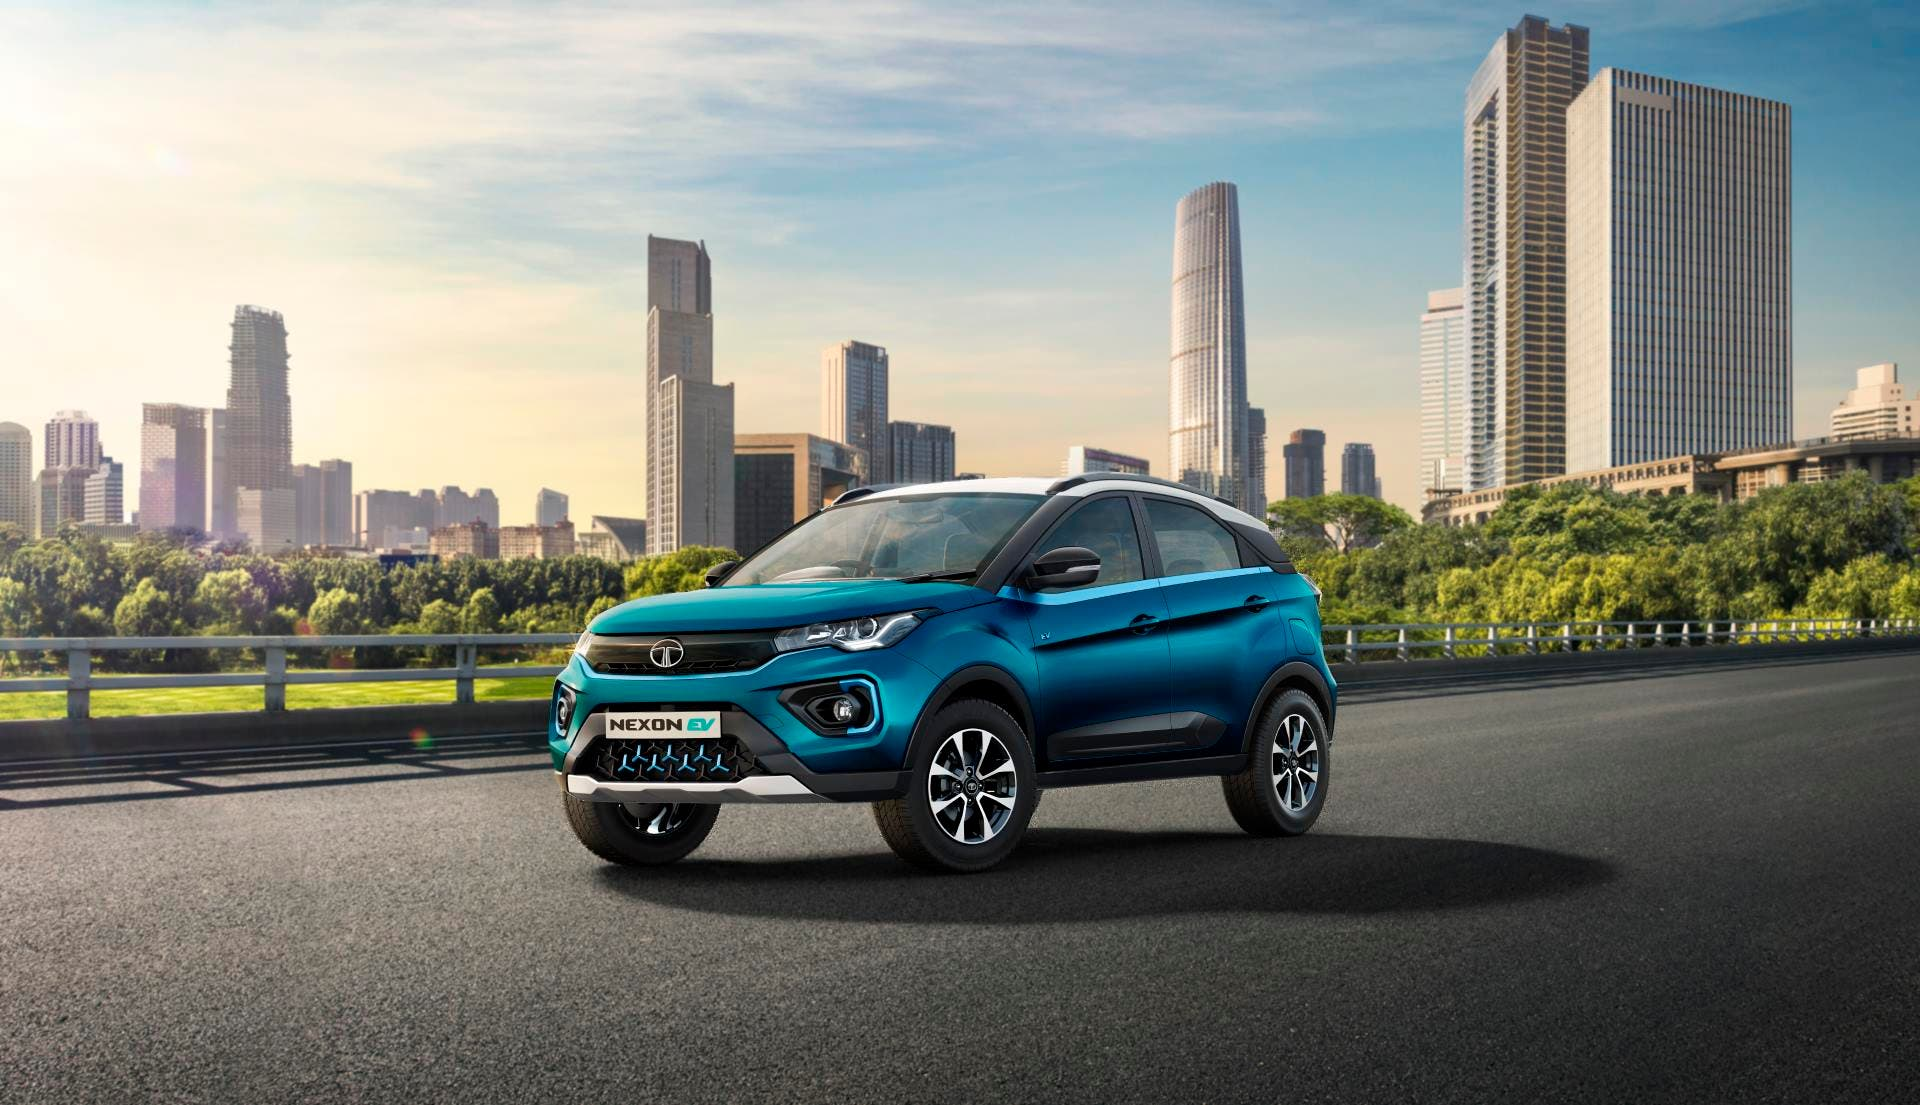 Tata Nexon EV is now available with Subscription scheme